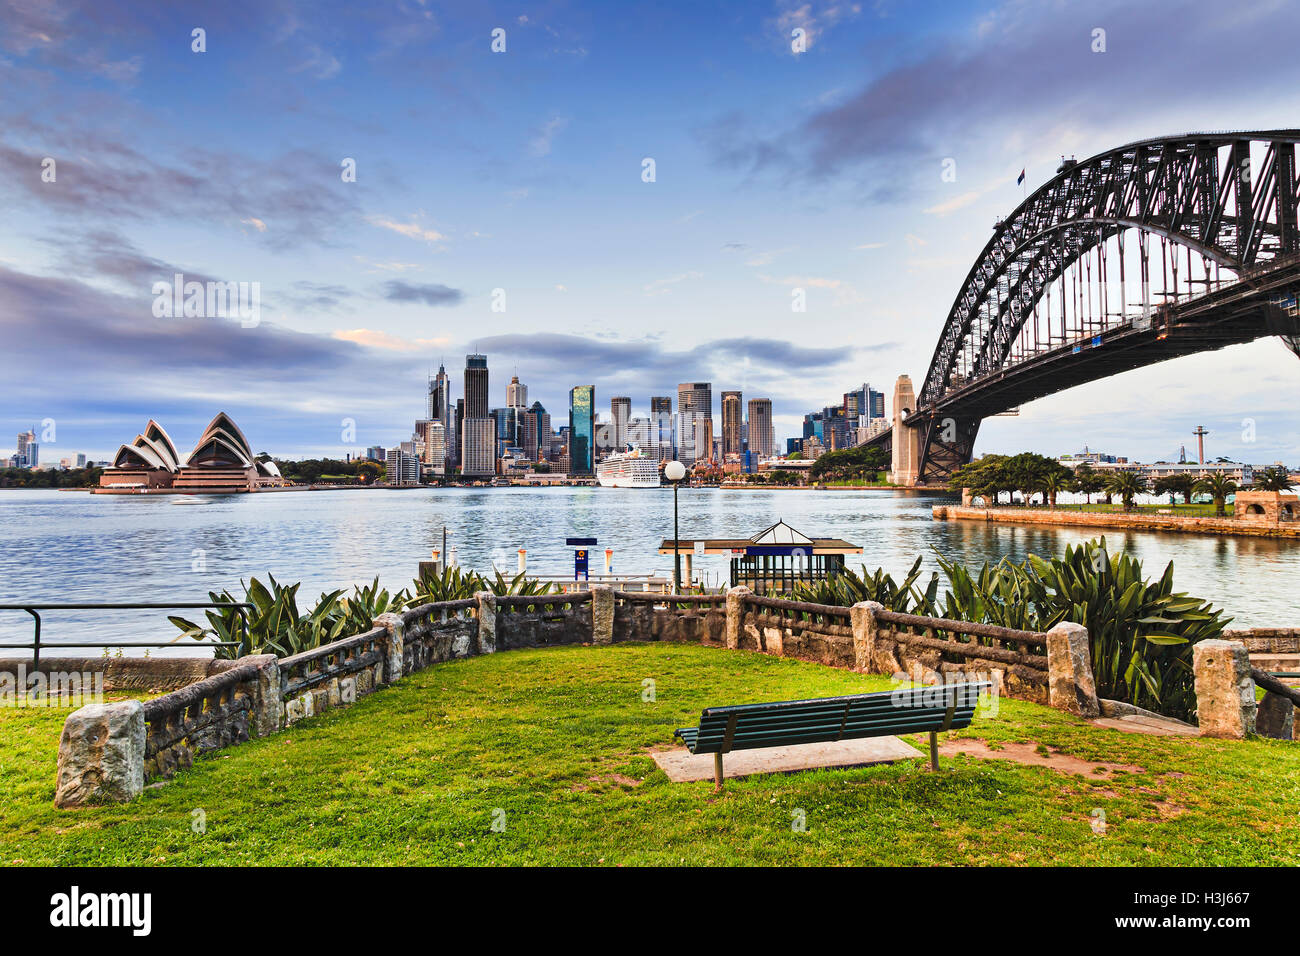 Green grass and bench in recreational park zone of Kirribilli suburb of Sydney across harbour from the city major - Stock Image